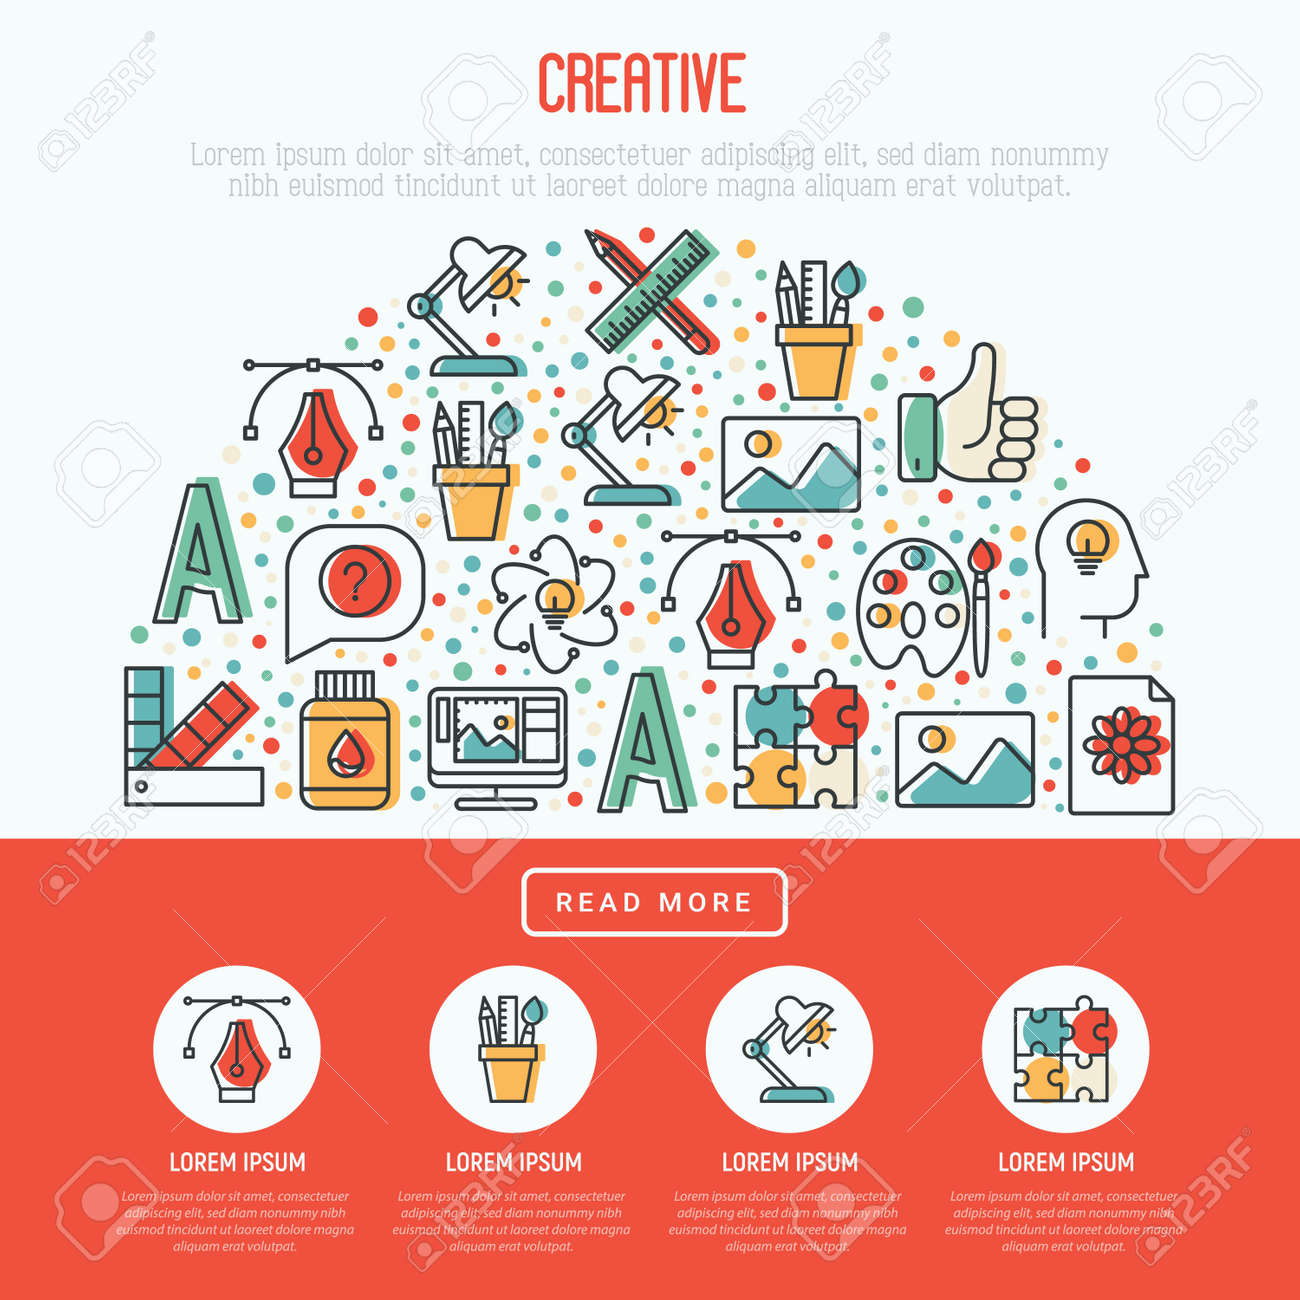 Creative Concept In Half Circle With Thin Line Icons Of Idea Royalty Free Cliparts Vectors And Stock Illustration Image 100953579